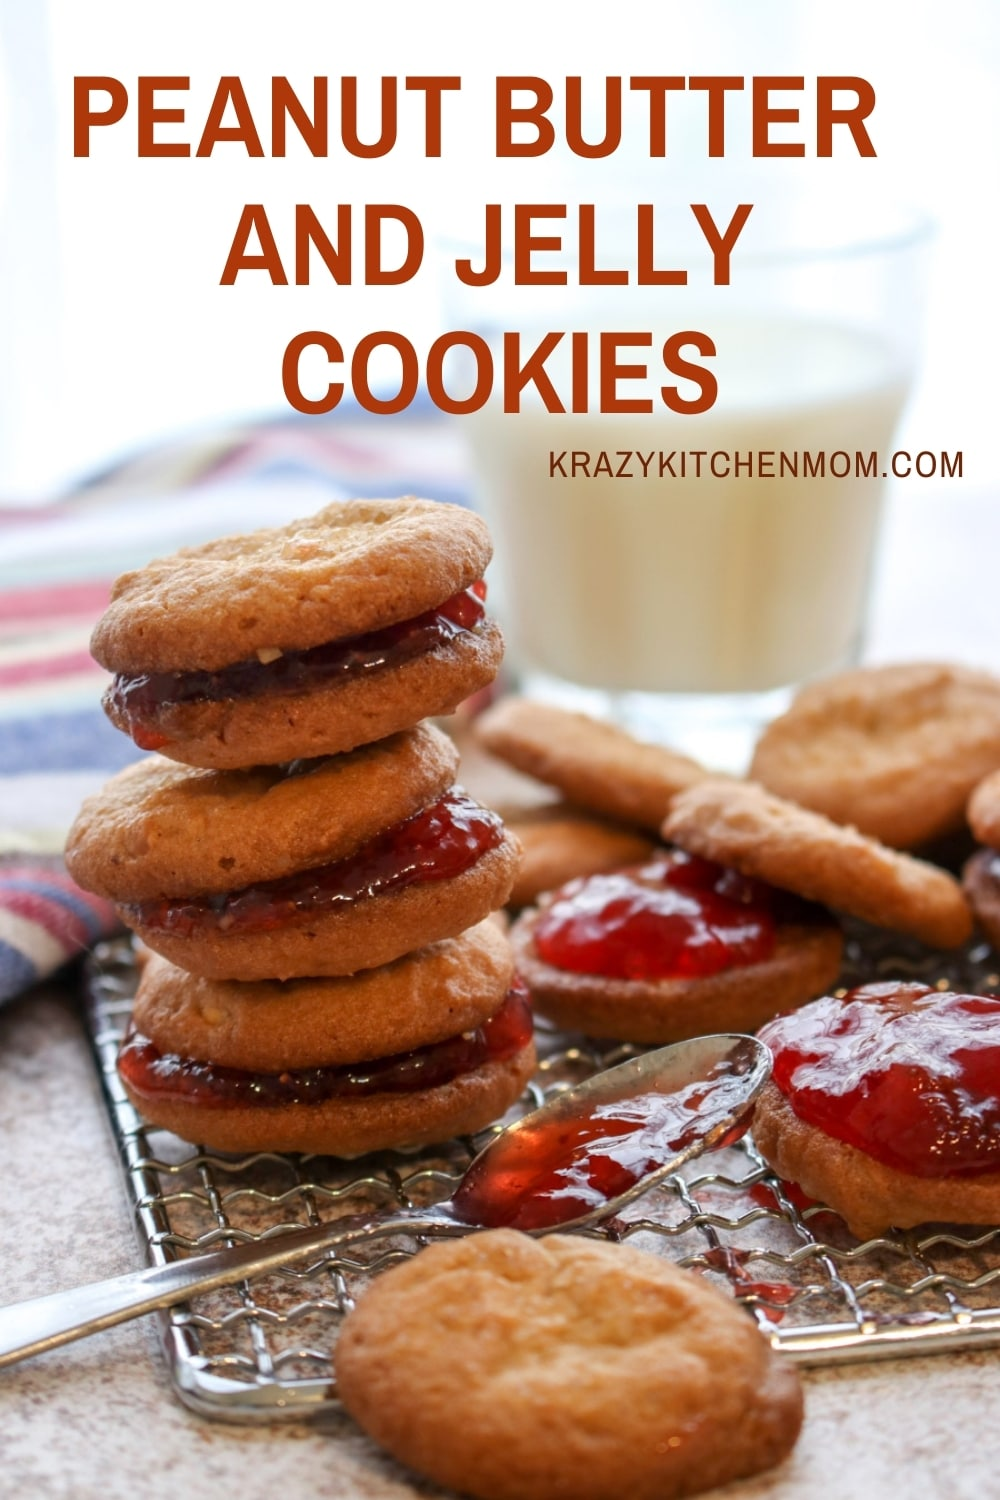 Two peanut butter cookies sandwiched together with grape jelly make the best Peanut Butter and Jelly Cookies.Crunchy, creamy, sweet - everything you remember in a delicious little three-bite cookie. via @krazykitchenmom